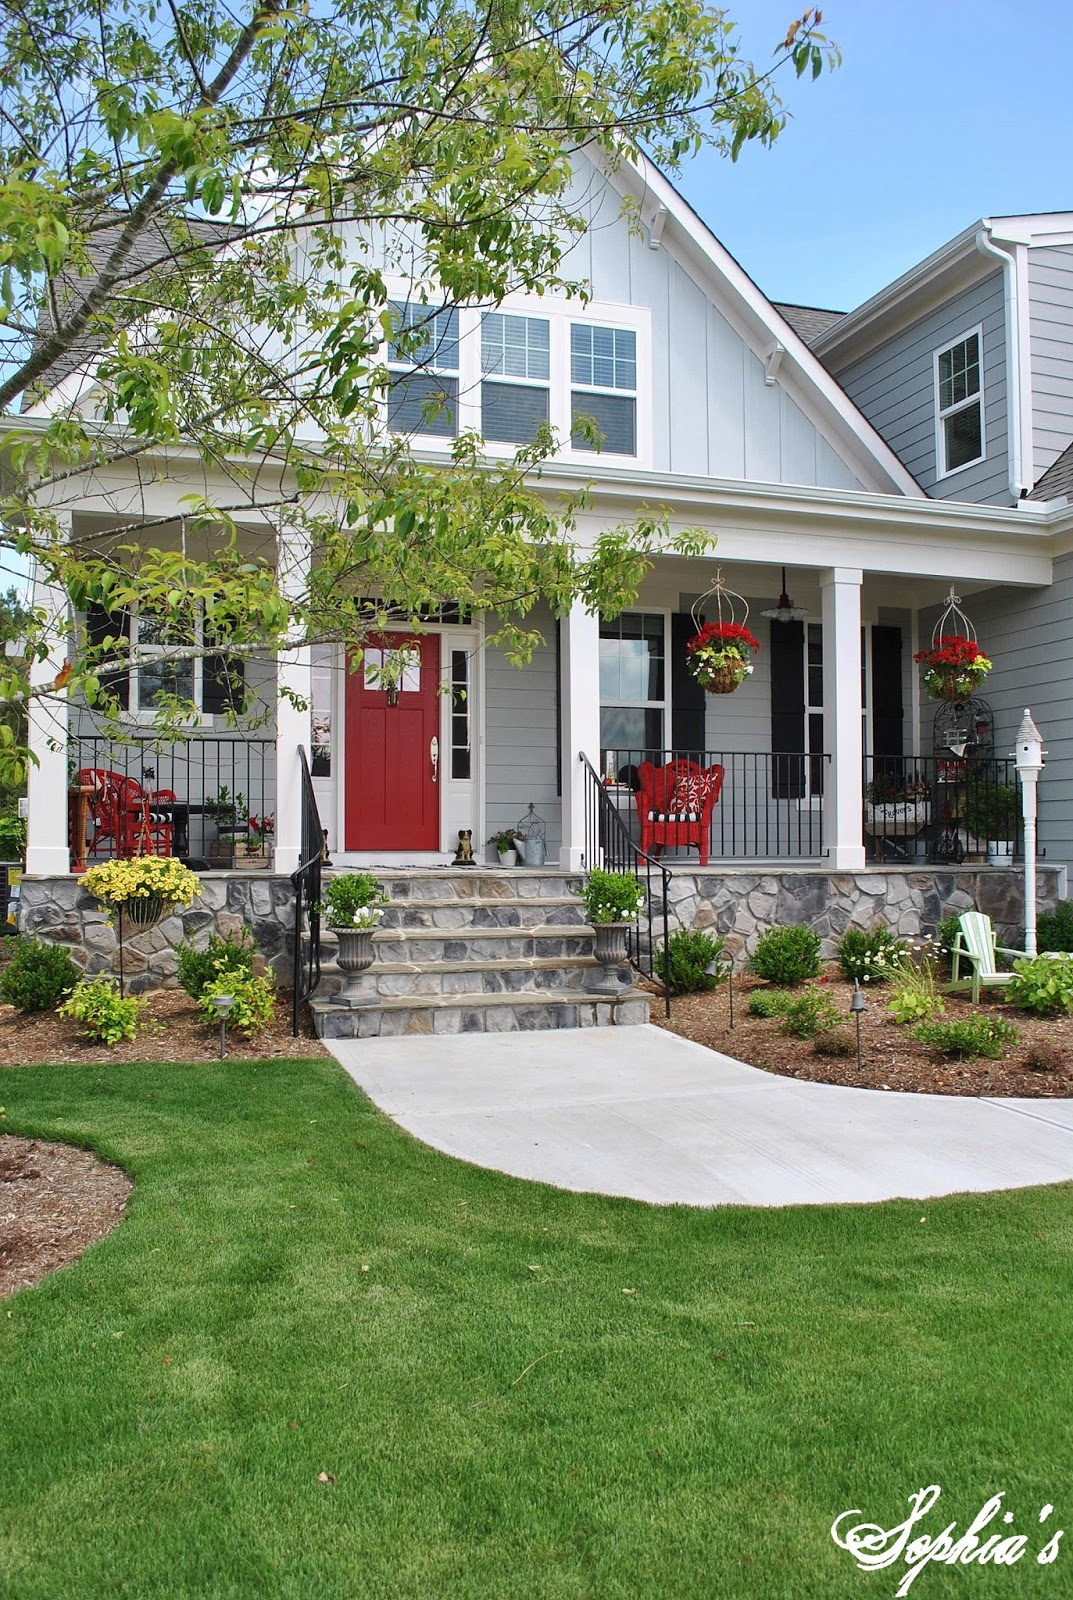 Sophia 39 s farmhouse style front porch with pops of red Sophia house